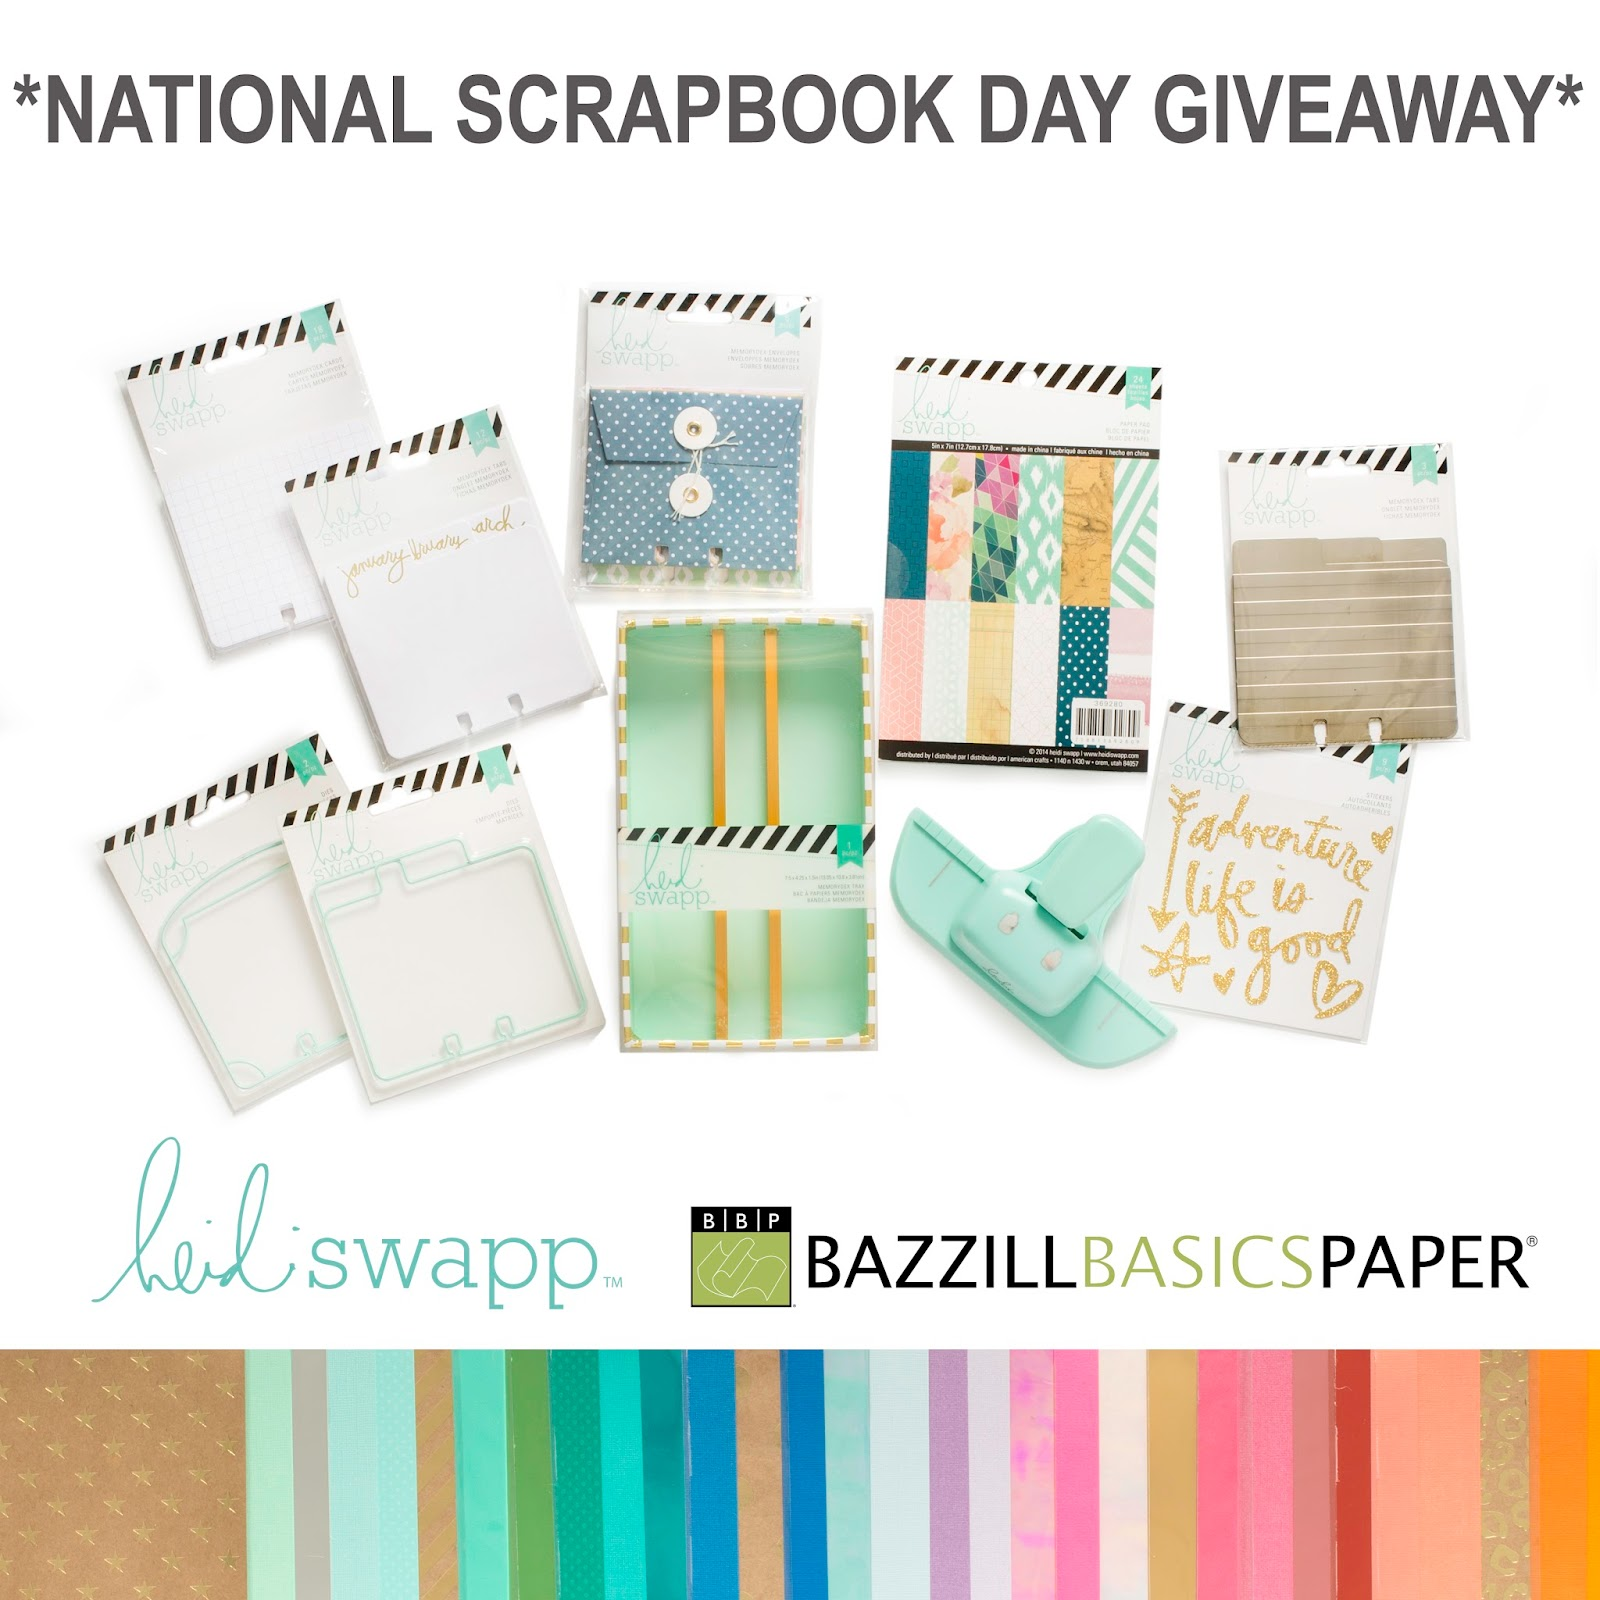 Bazzill Basics Paper (inter)National Scrapbook Day Giveaway #bazzillbasics #giveaway